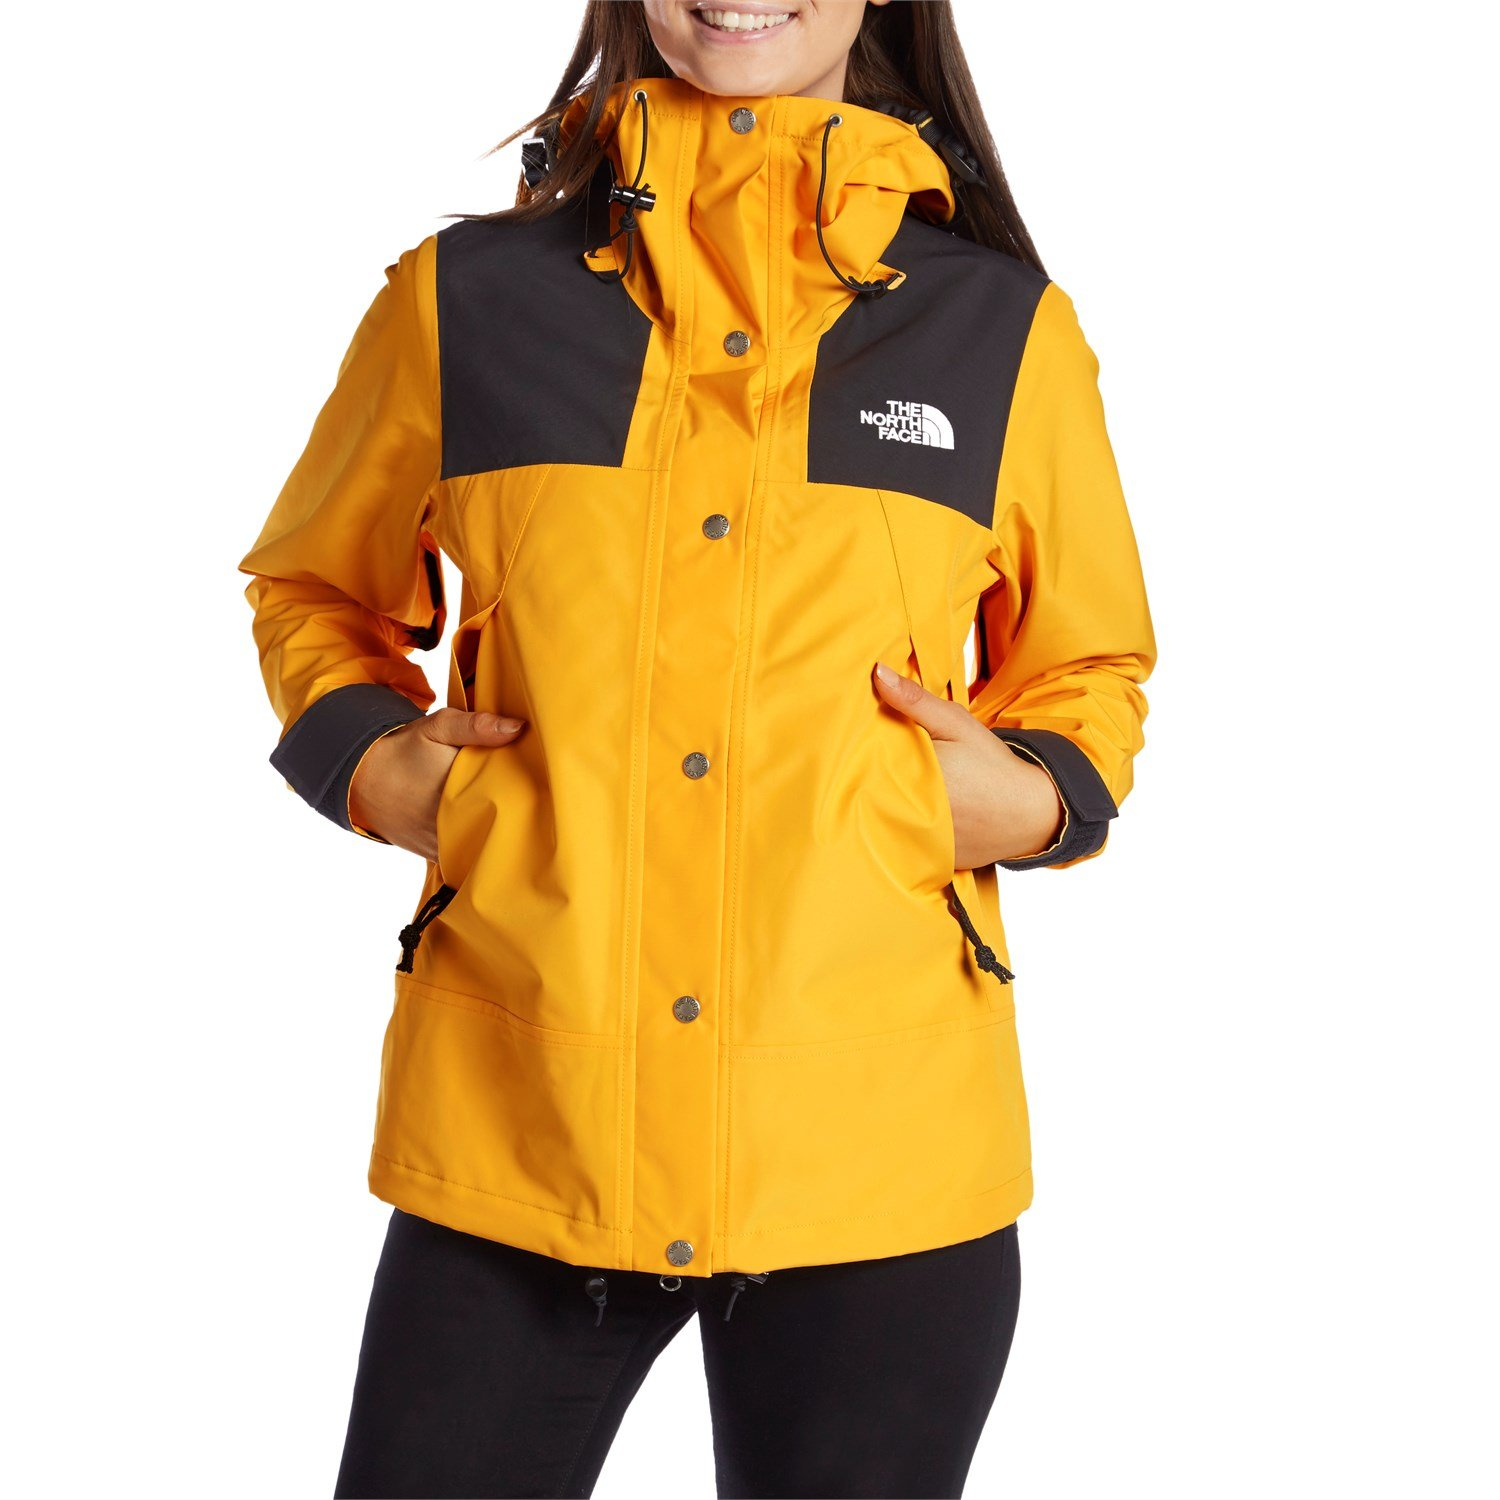 6b8d629cfaa The North Face 1990 Mountain GORE-TEX® Jacket - Women s